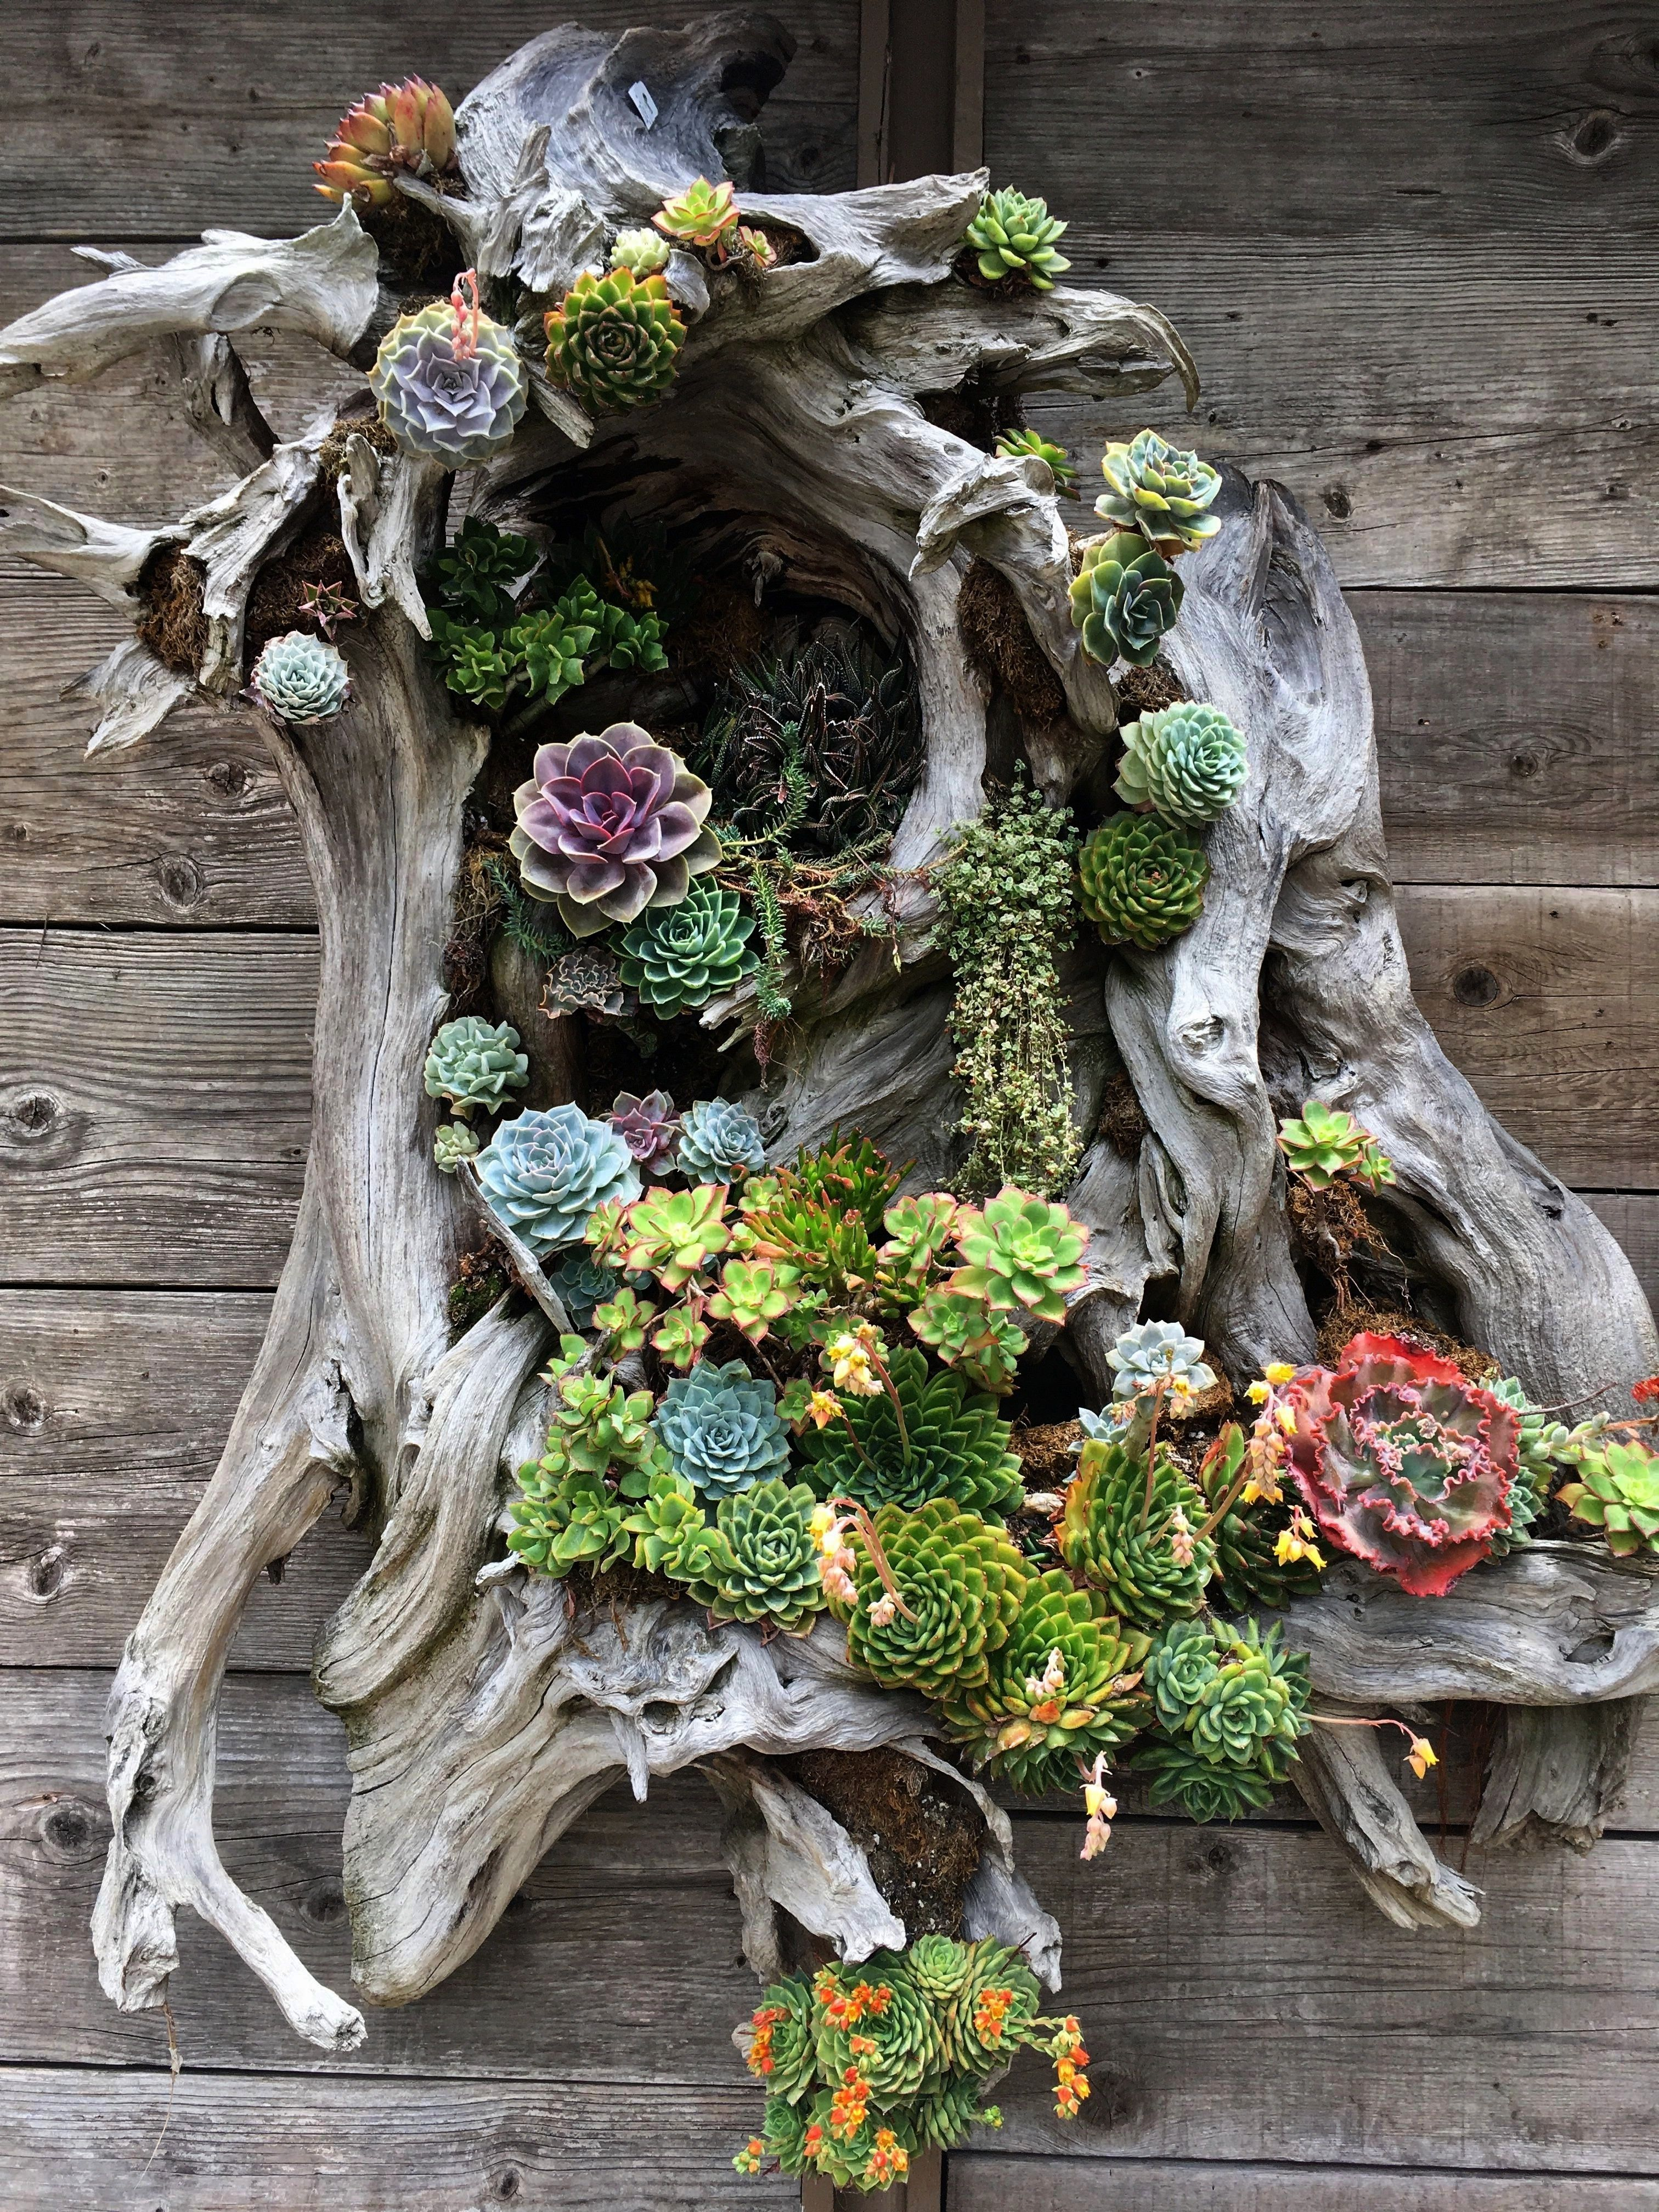 free recycled pots and planters this is drift wood nailed together with sphagnum moss and succulents tucked in as wall artSucculent planters  free recycled pots and plan...